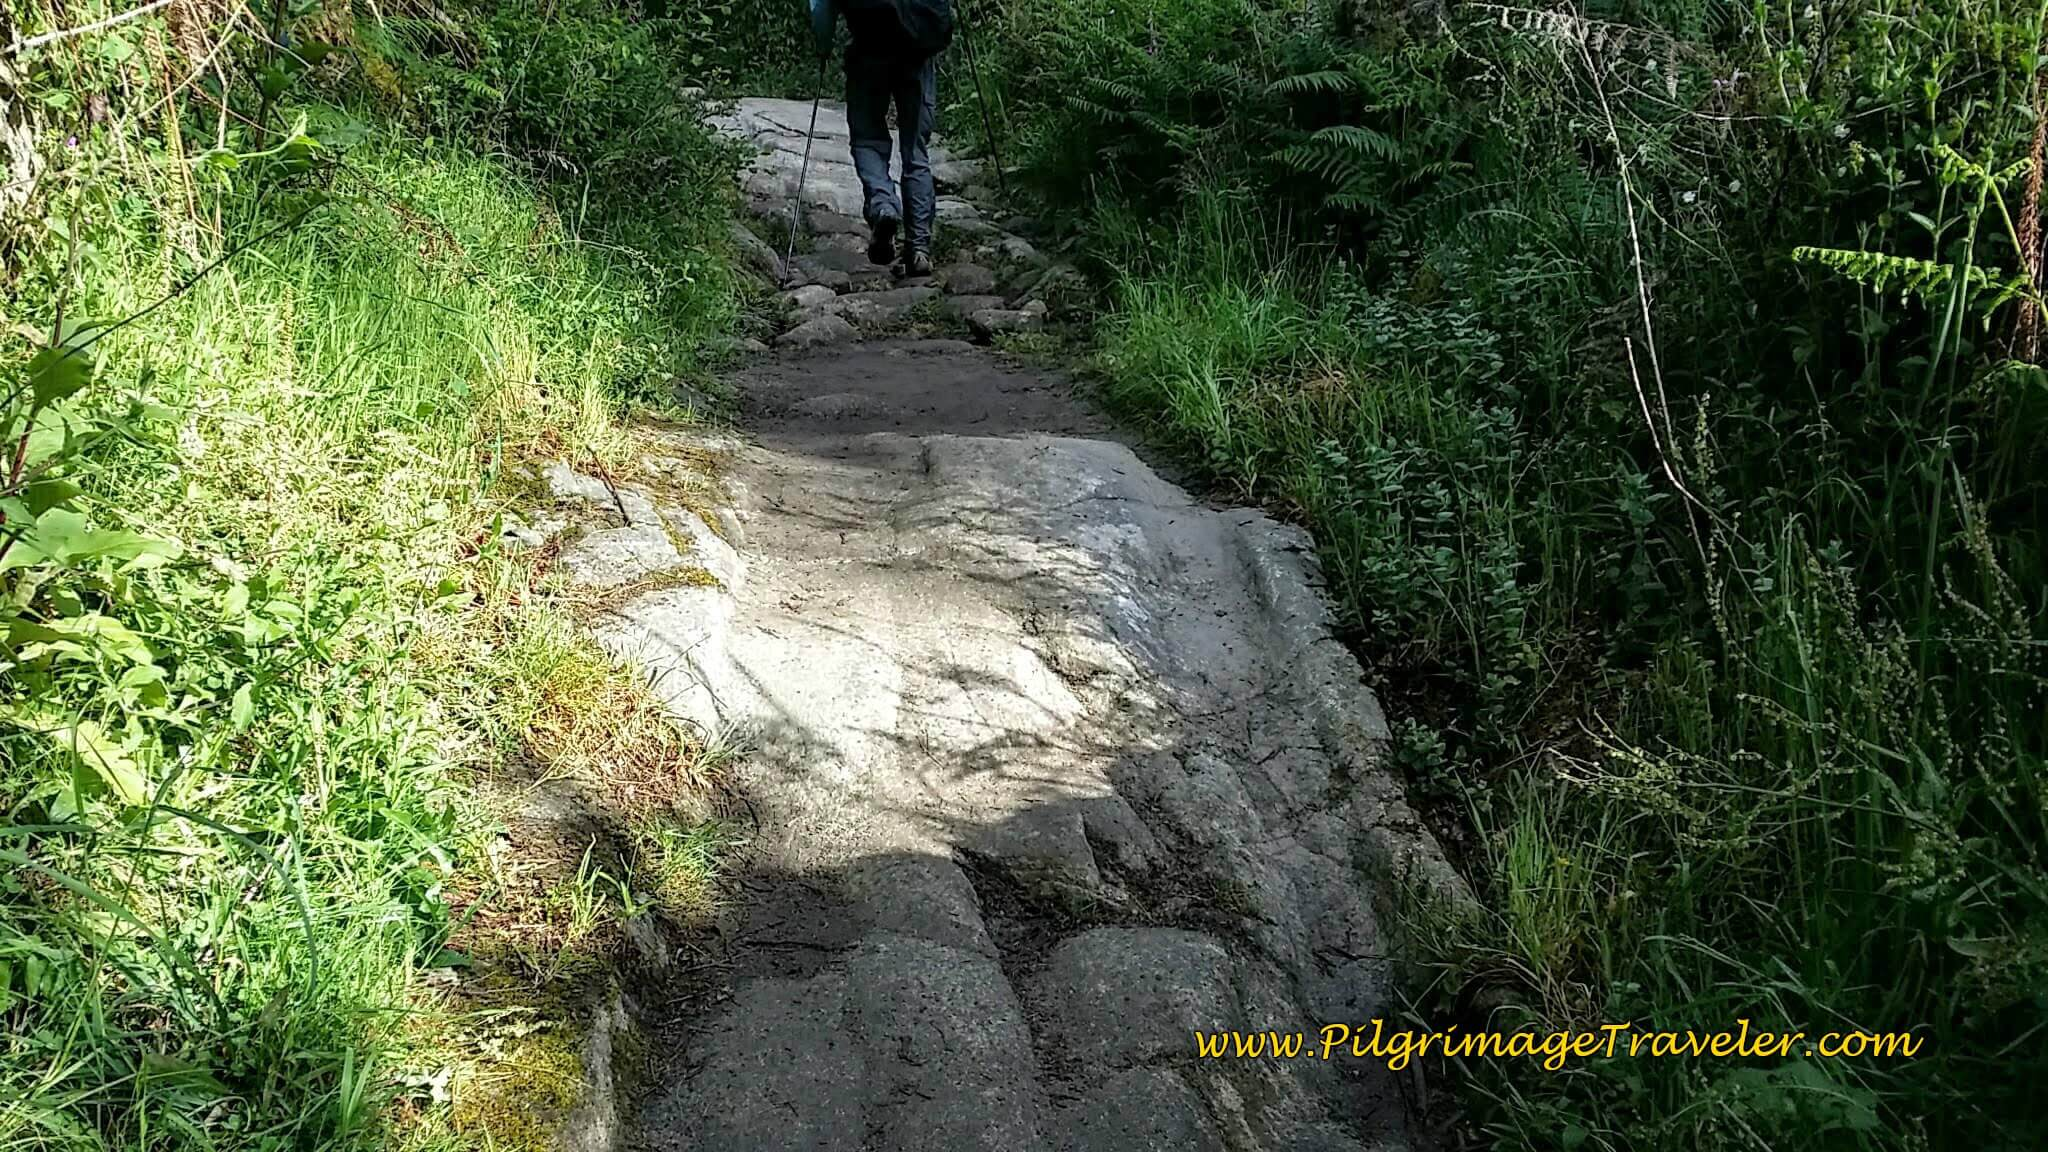 Wagon Wheel Ruts on the Ancient Road, day twenty-two on the Camino Portugués